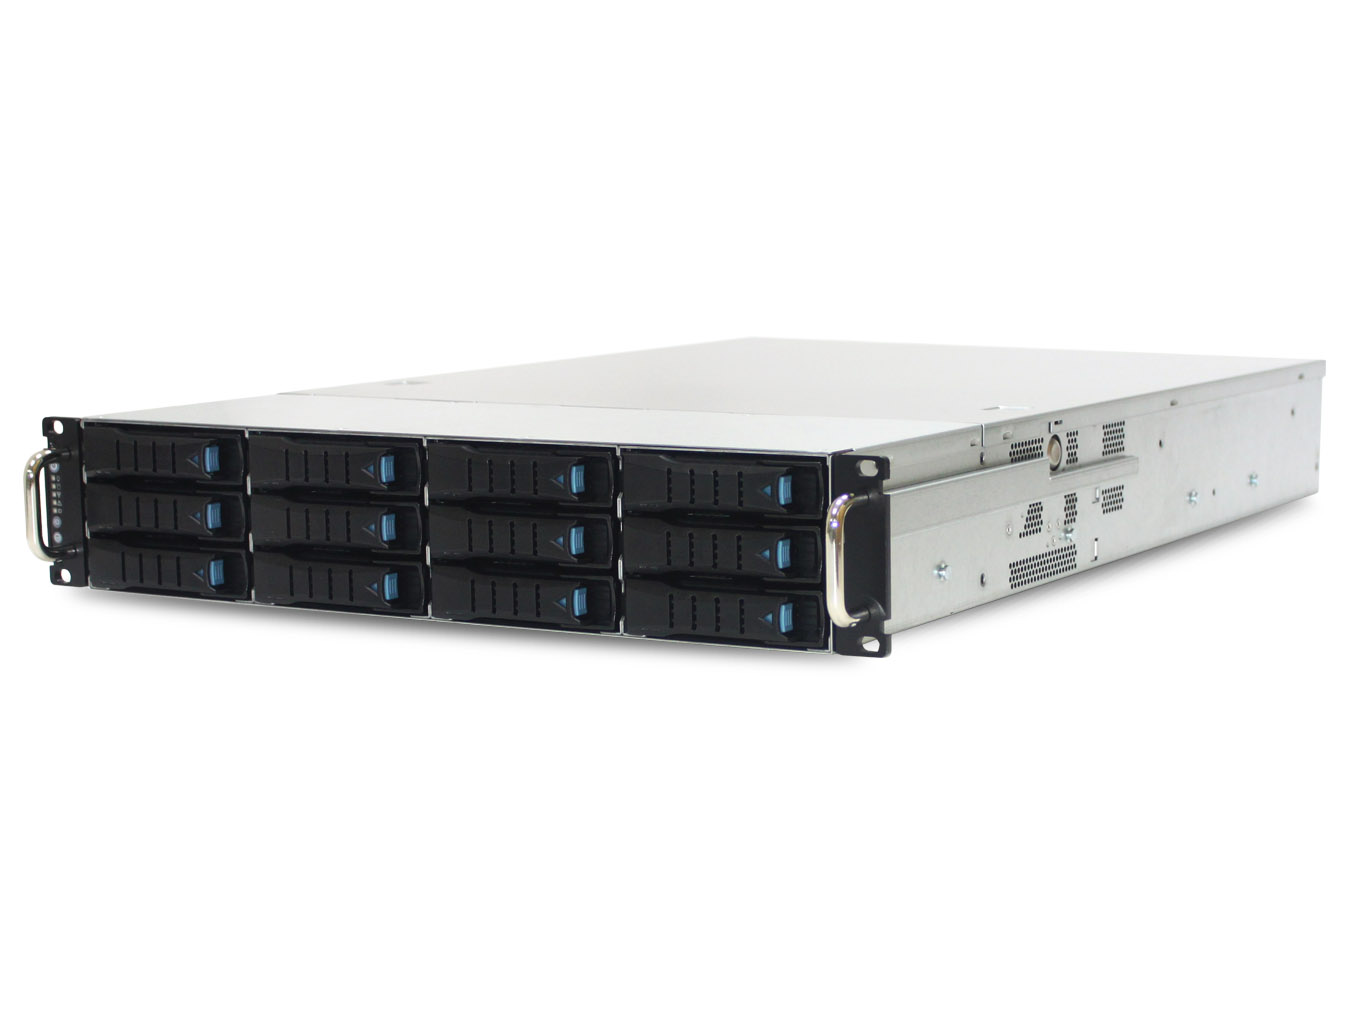 AIC SB202-SP XP1-S202SP05 2U 12-Bay Storage Server